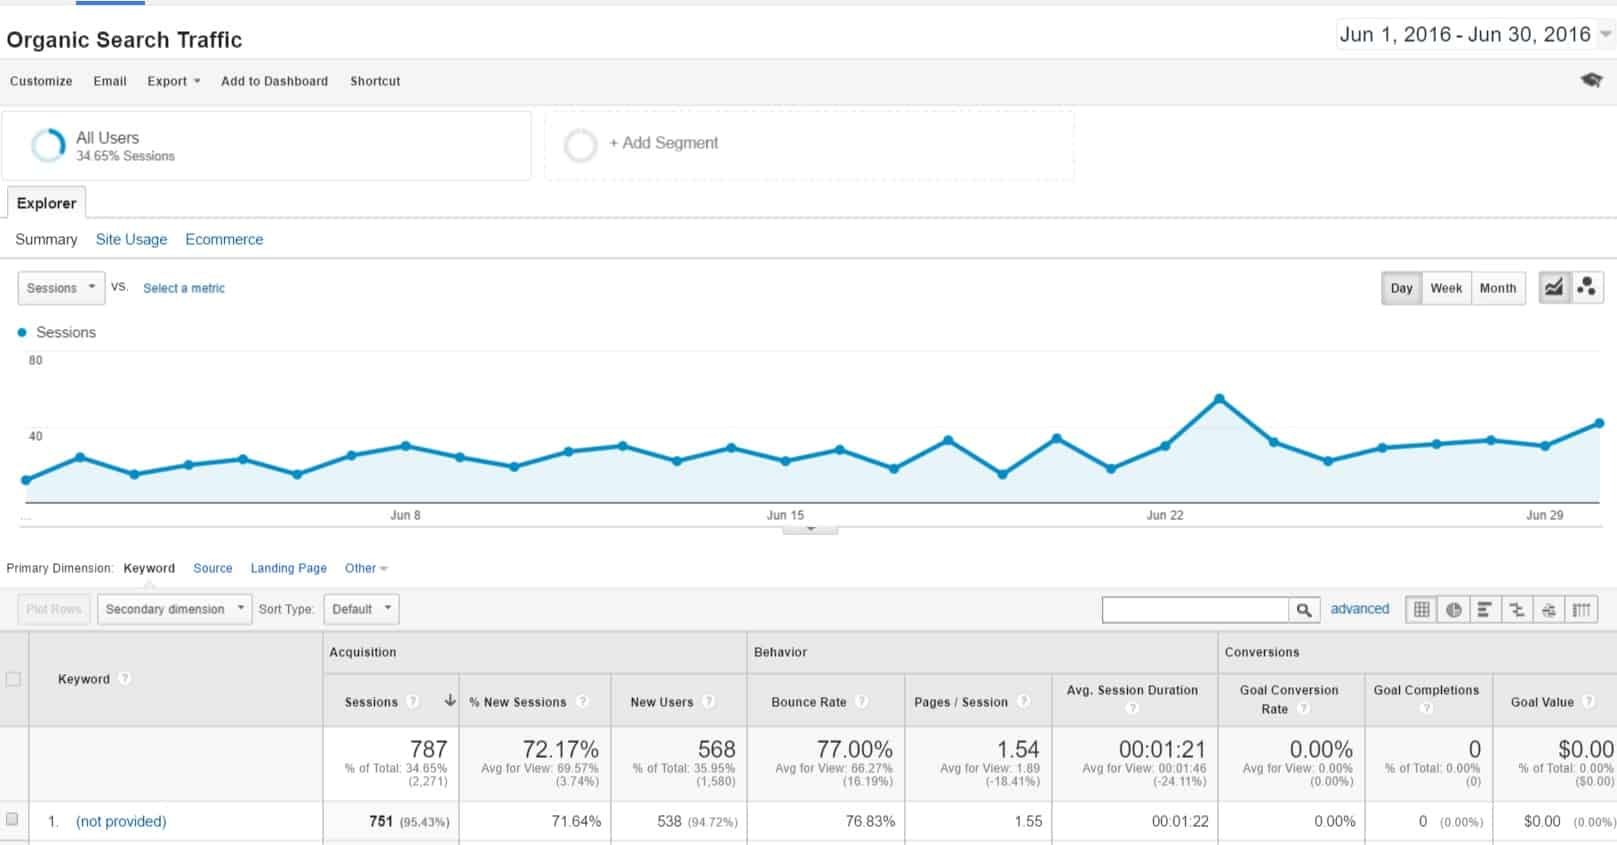 Google Analytics June Organic Search